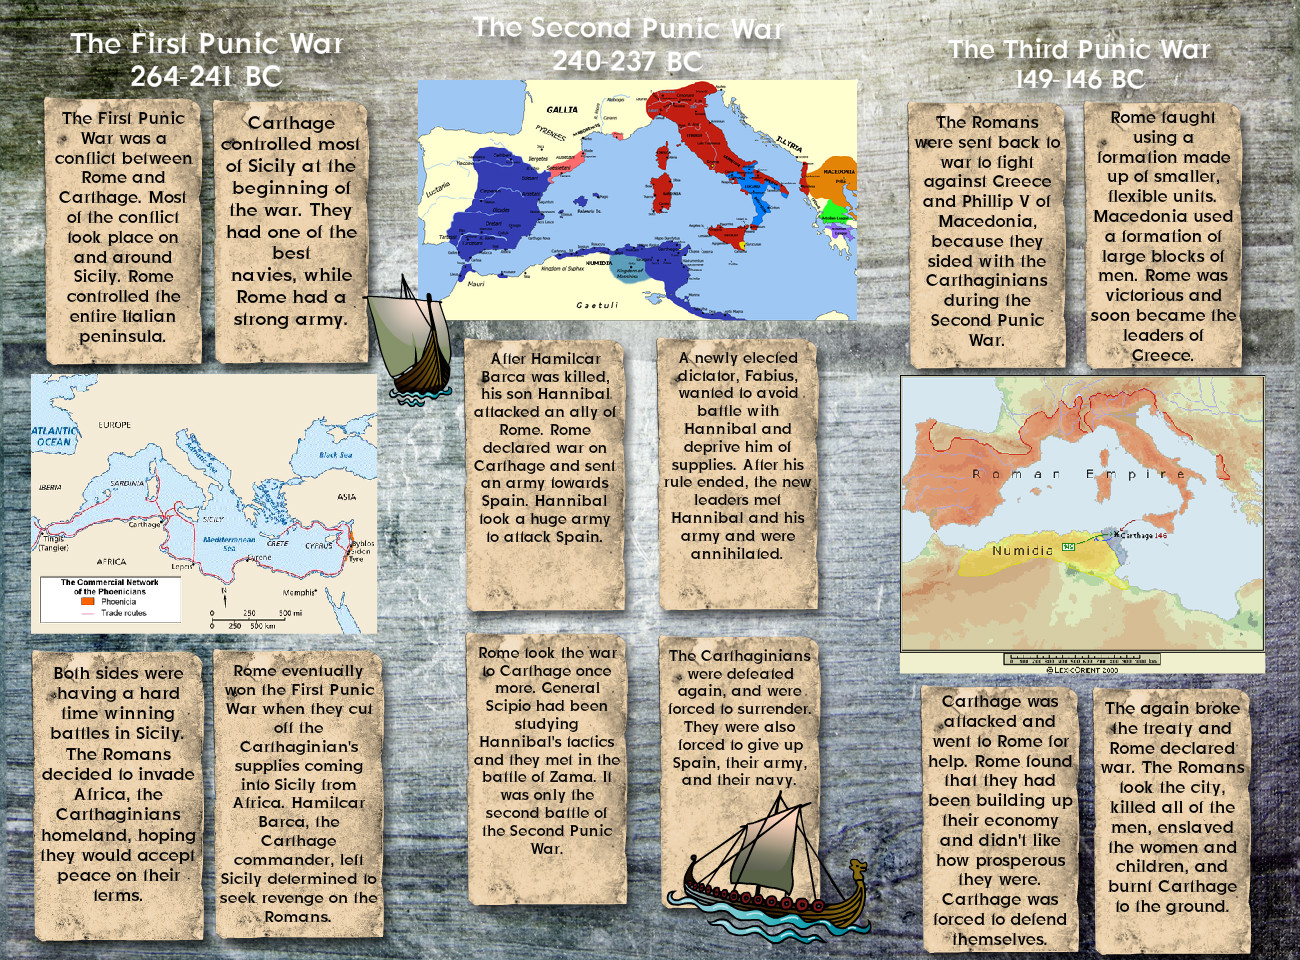 [2015] Brooklyn Anderson: The Punic Wars